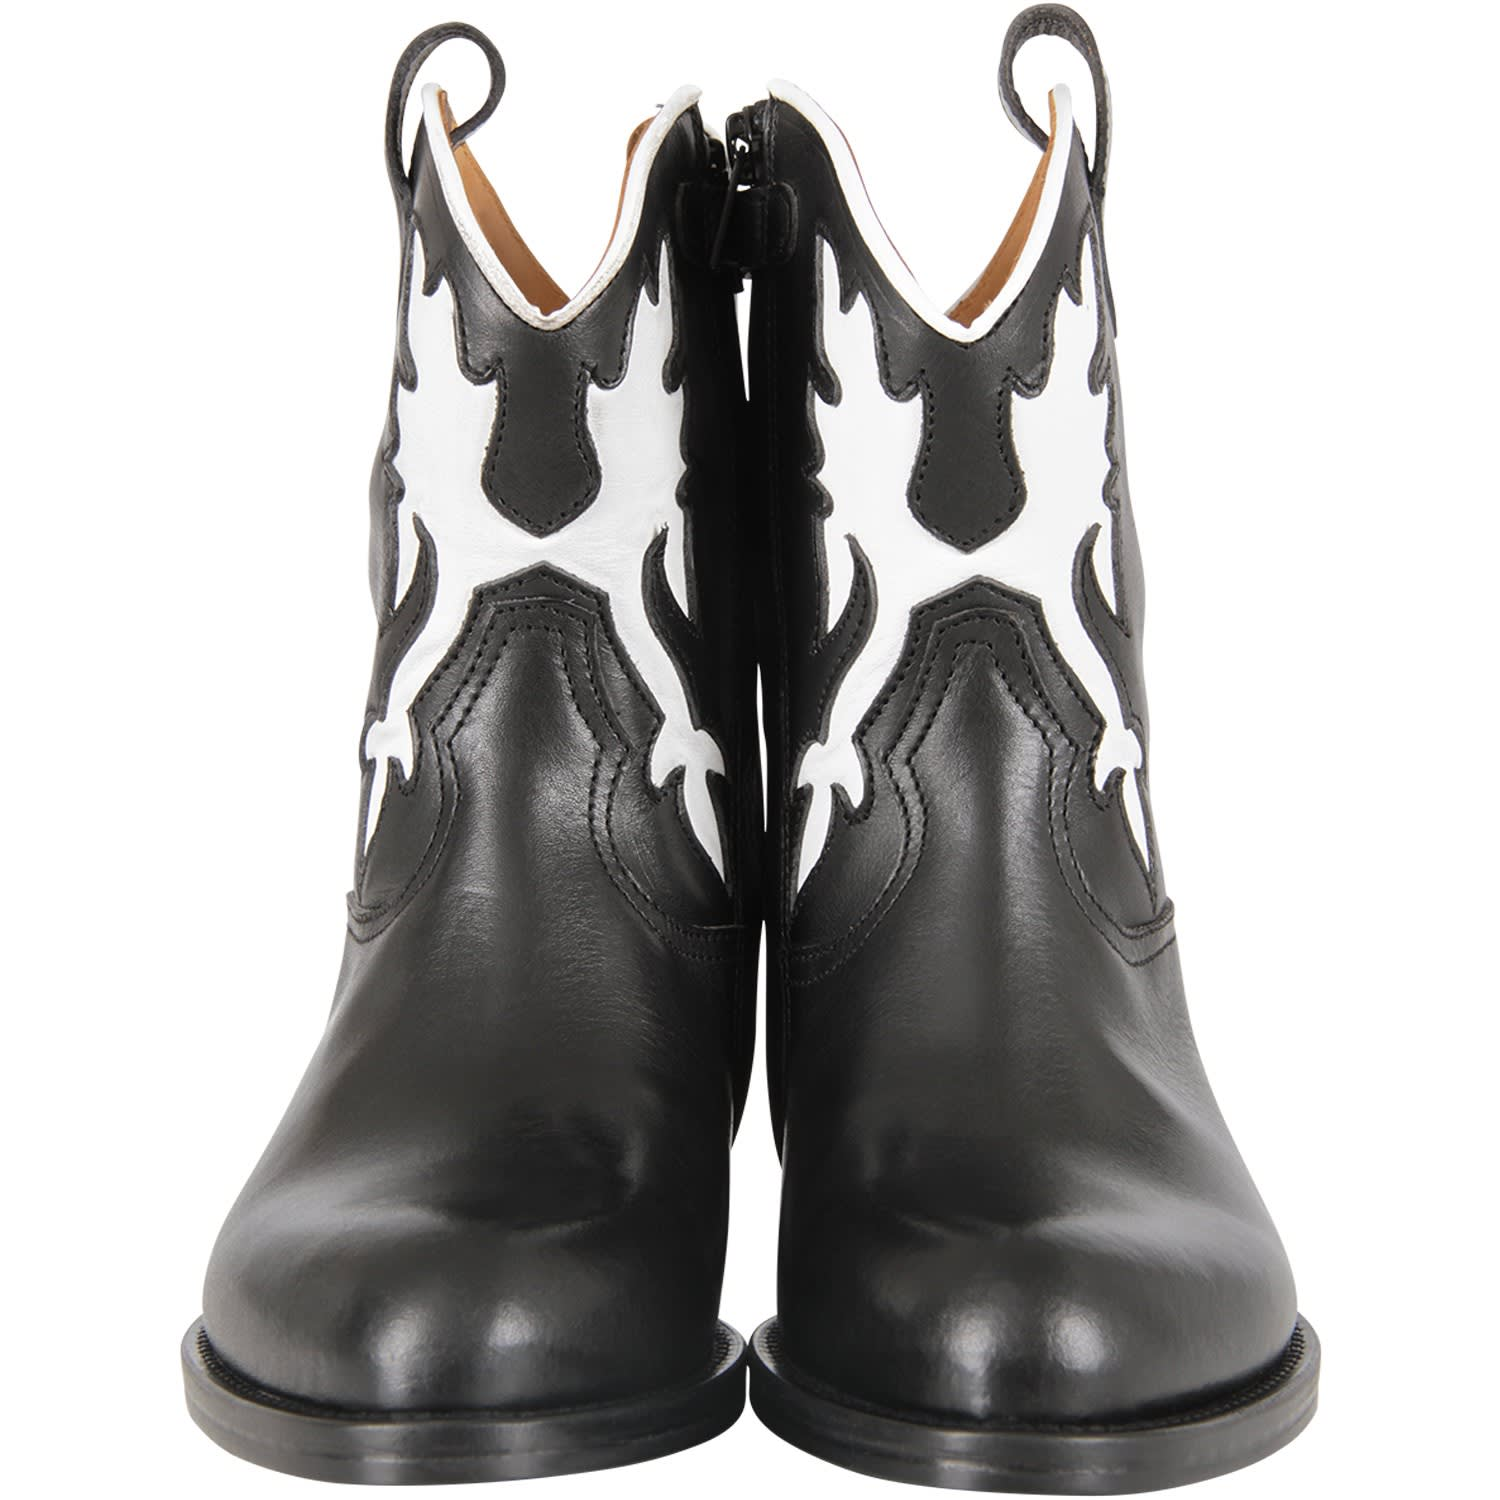 Best price on the market at italist | Gallucci Gallucci Black Kids Boots With Crocodile Print